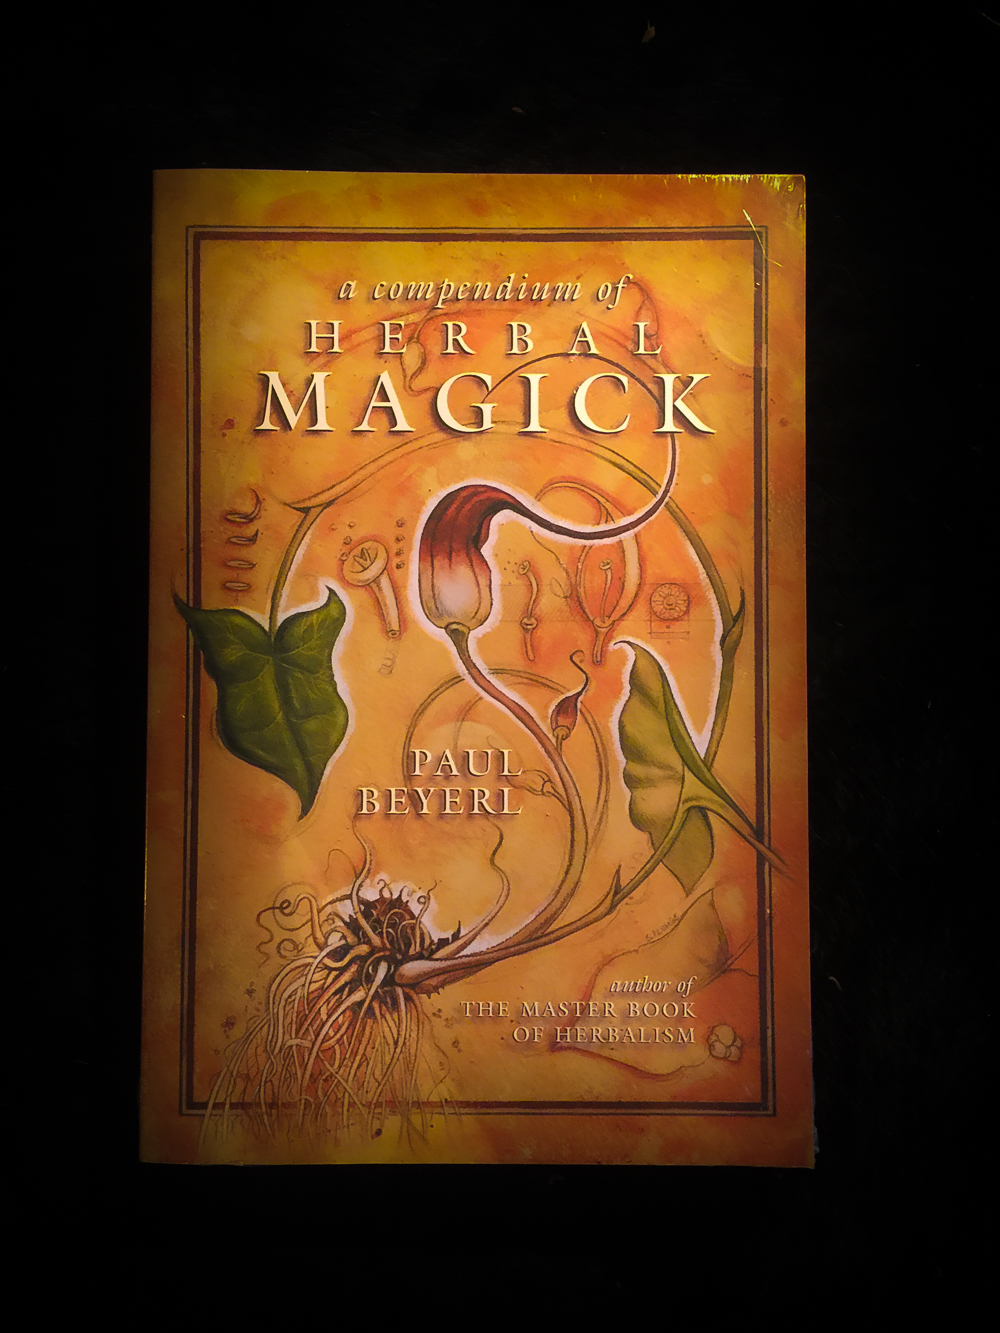 Compendium of Herbal Magic